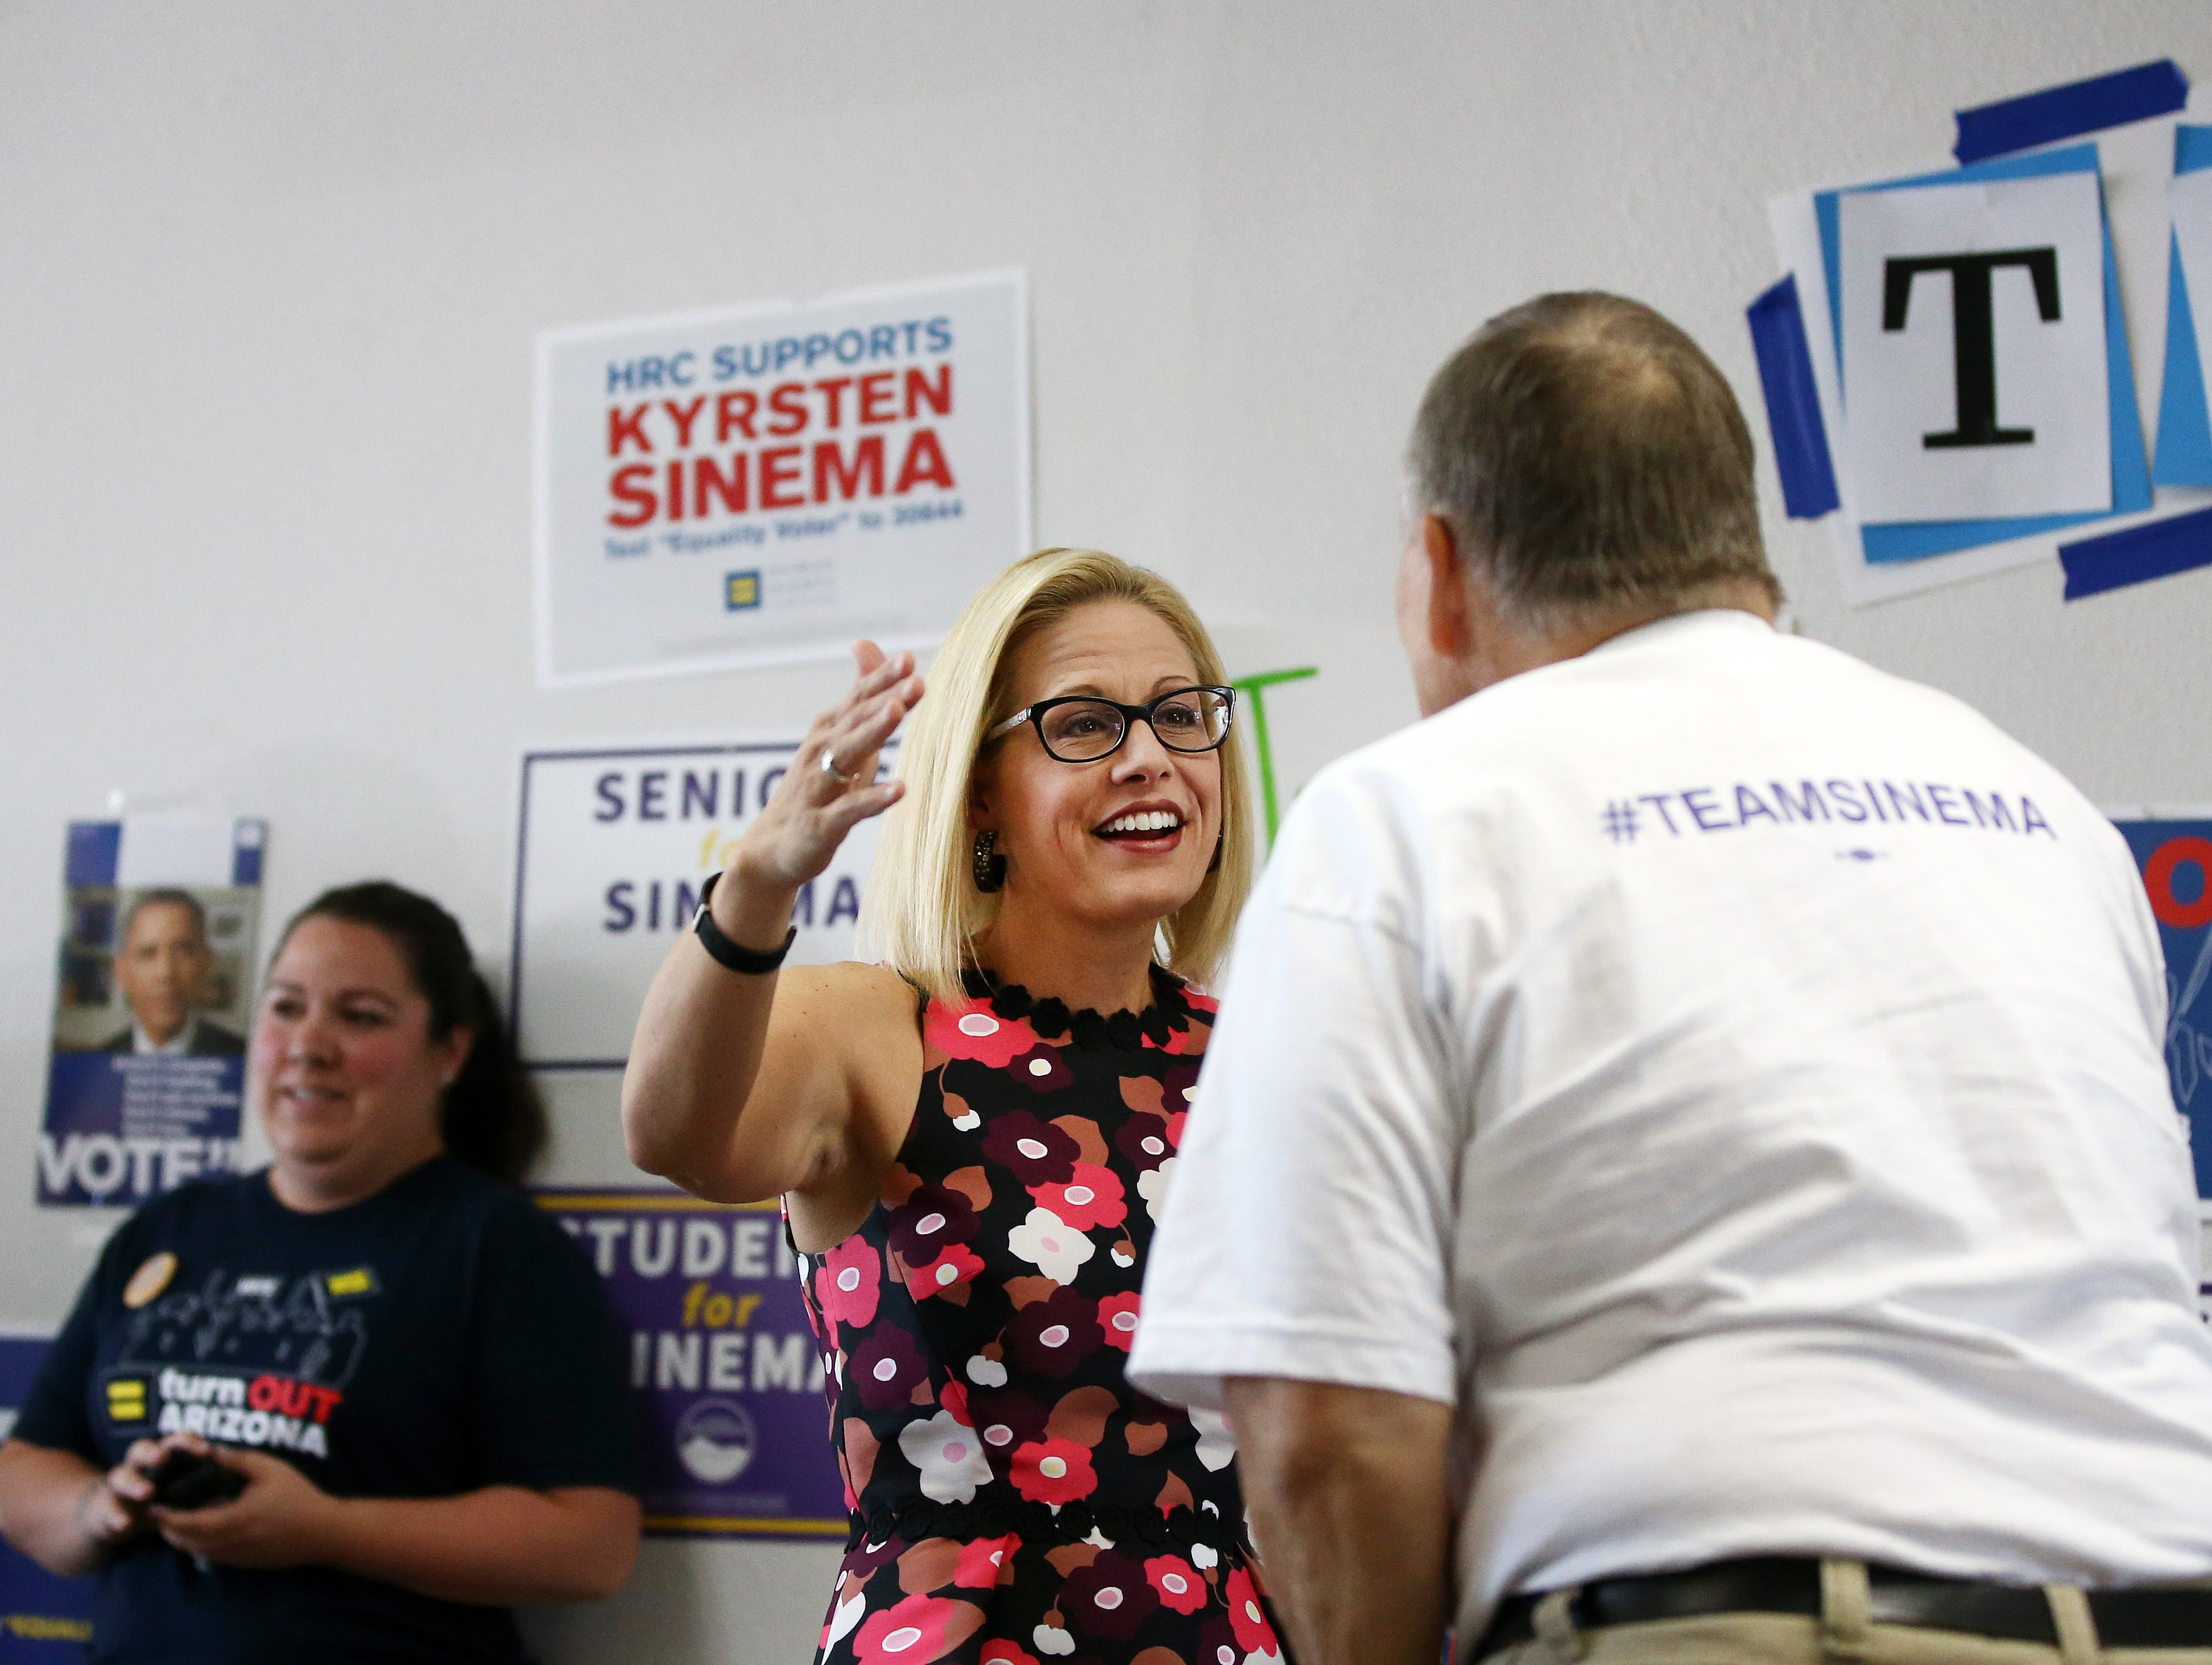 Kyrsten Sinema, the Democratic candidate for the U.S. Senate hugs veteran Leo Hintz of Laveen, Arizona, during a get-out-the-vote event with members of the Veterans for Sinema coalition and volunteers on Nov. 1 in Phoenix.